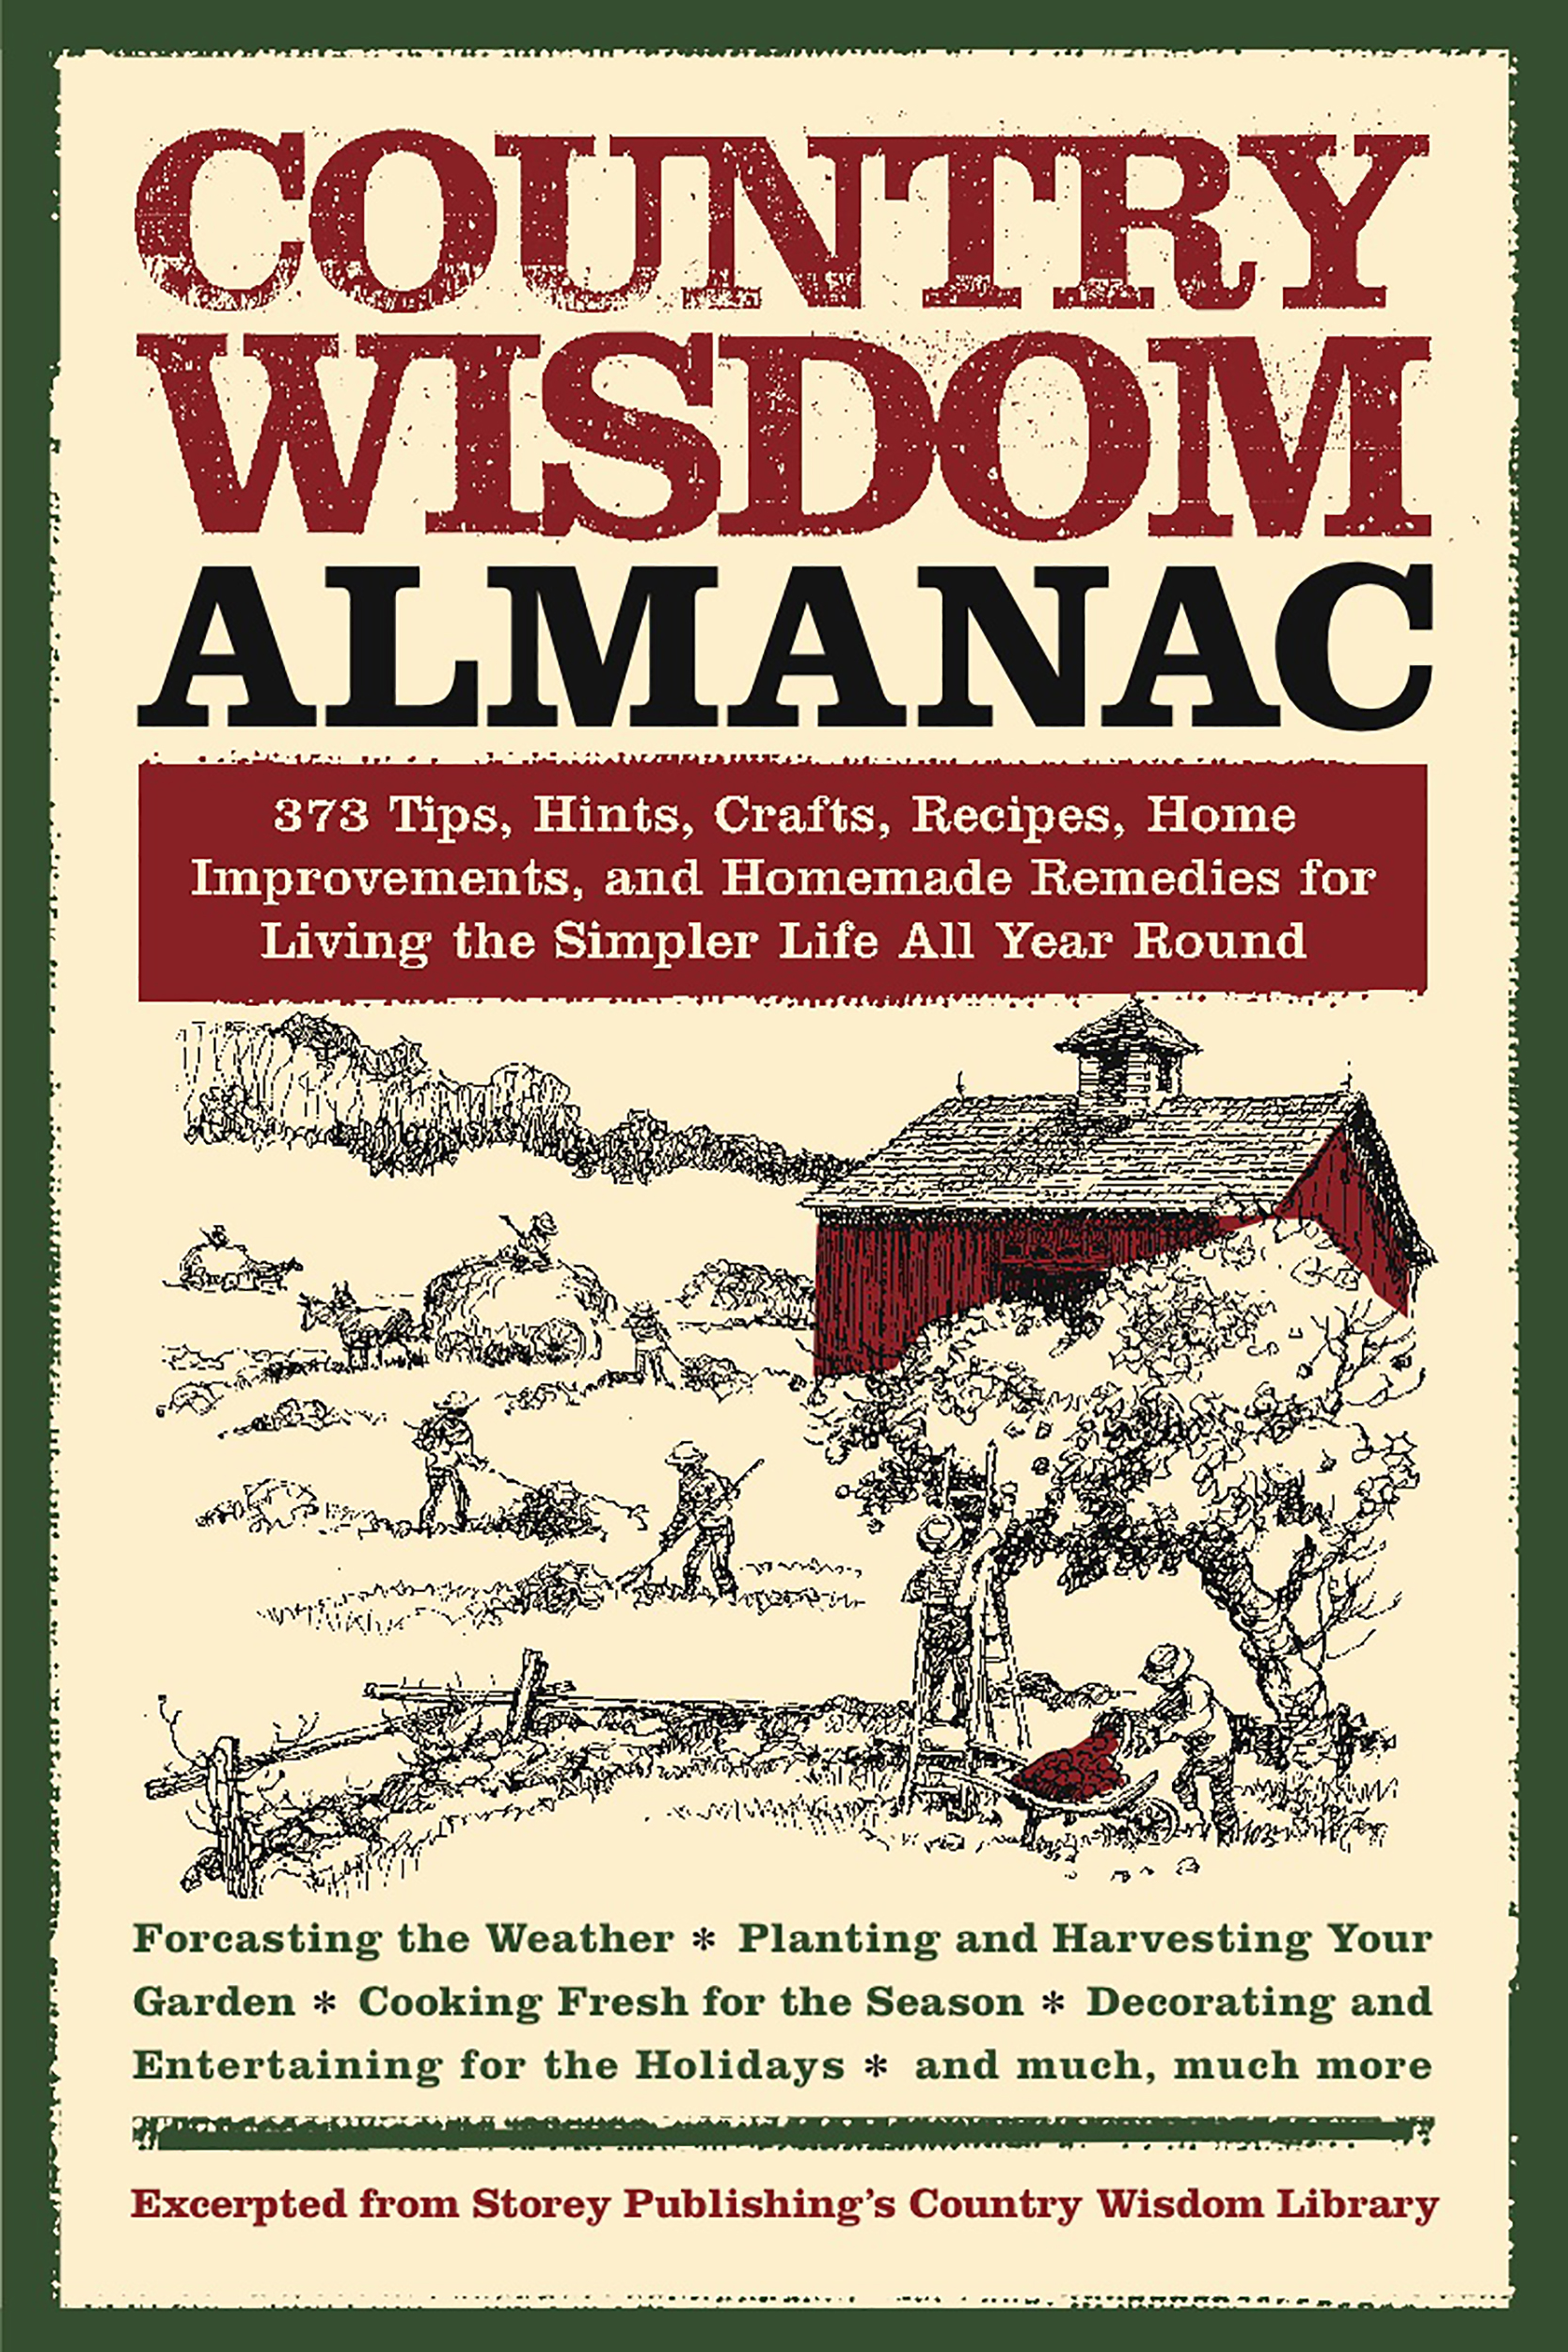 Country Wisdom Almanac 373 Tips, Crafts, Home Improvements, Recipes, and Homemade Remedies